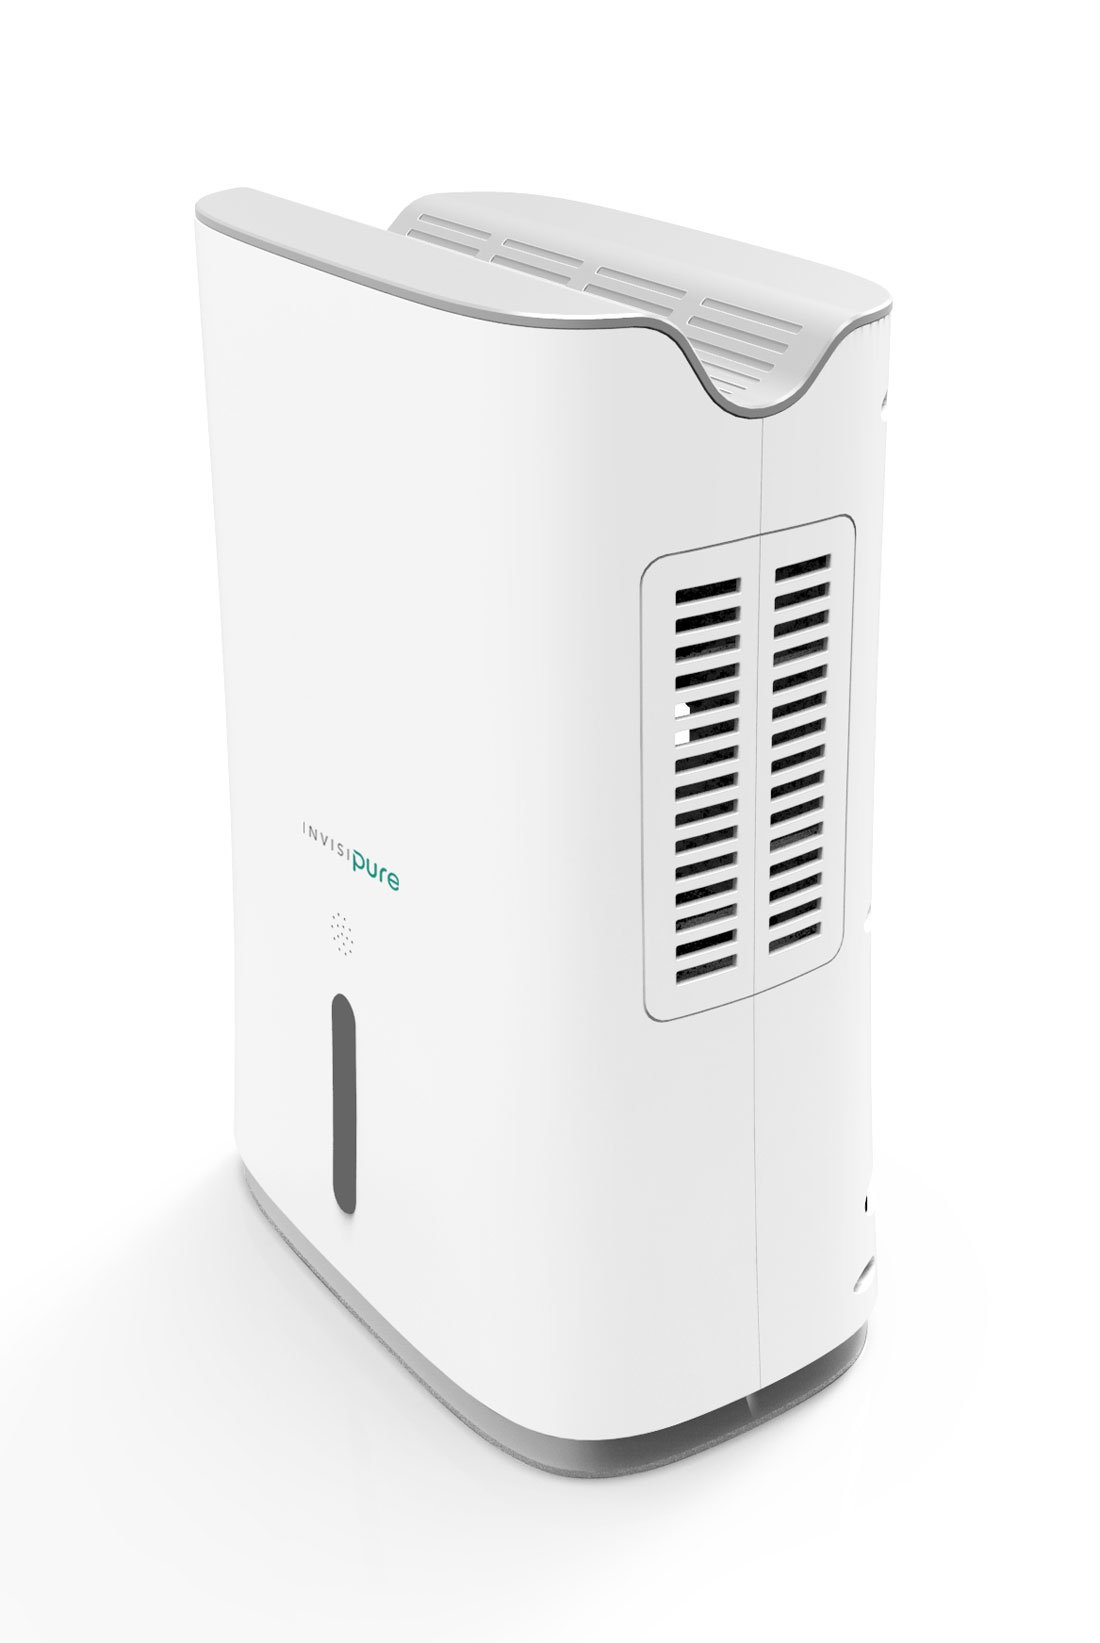 InvisiPure Hydrowave Dehumidifier - Small Compact Portable Dehumidifier for Home, RV, Bathroom, Closet, Bedroom, Small Room, Basement, Boat, Mold - Continuous Drain Hose Ready - Quiet Electric Peltier by InvisiPure